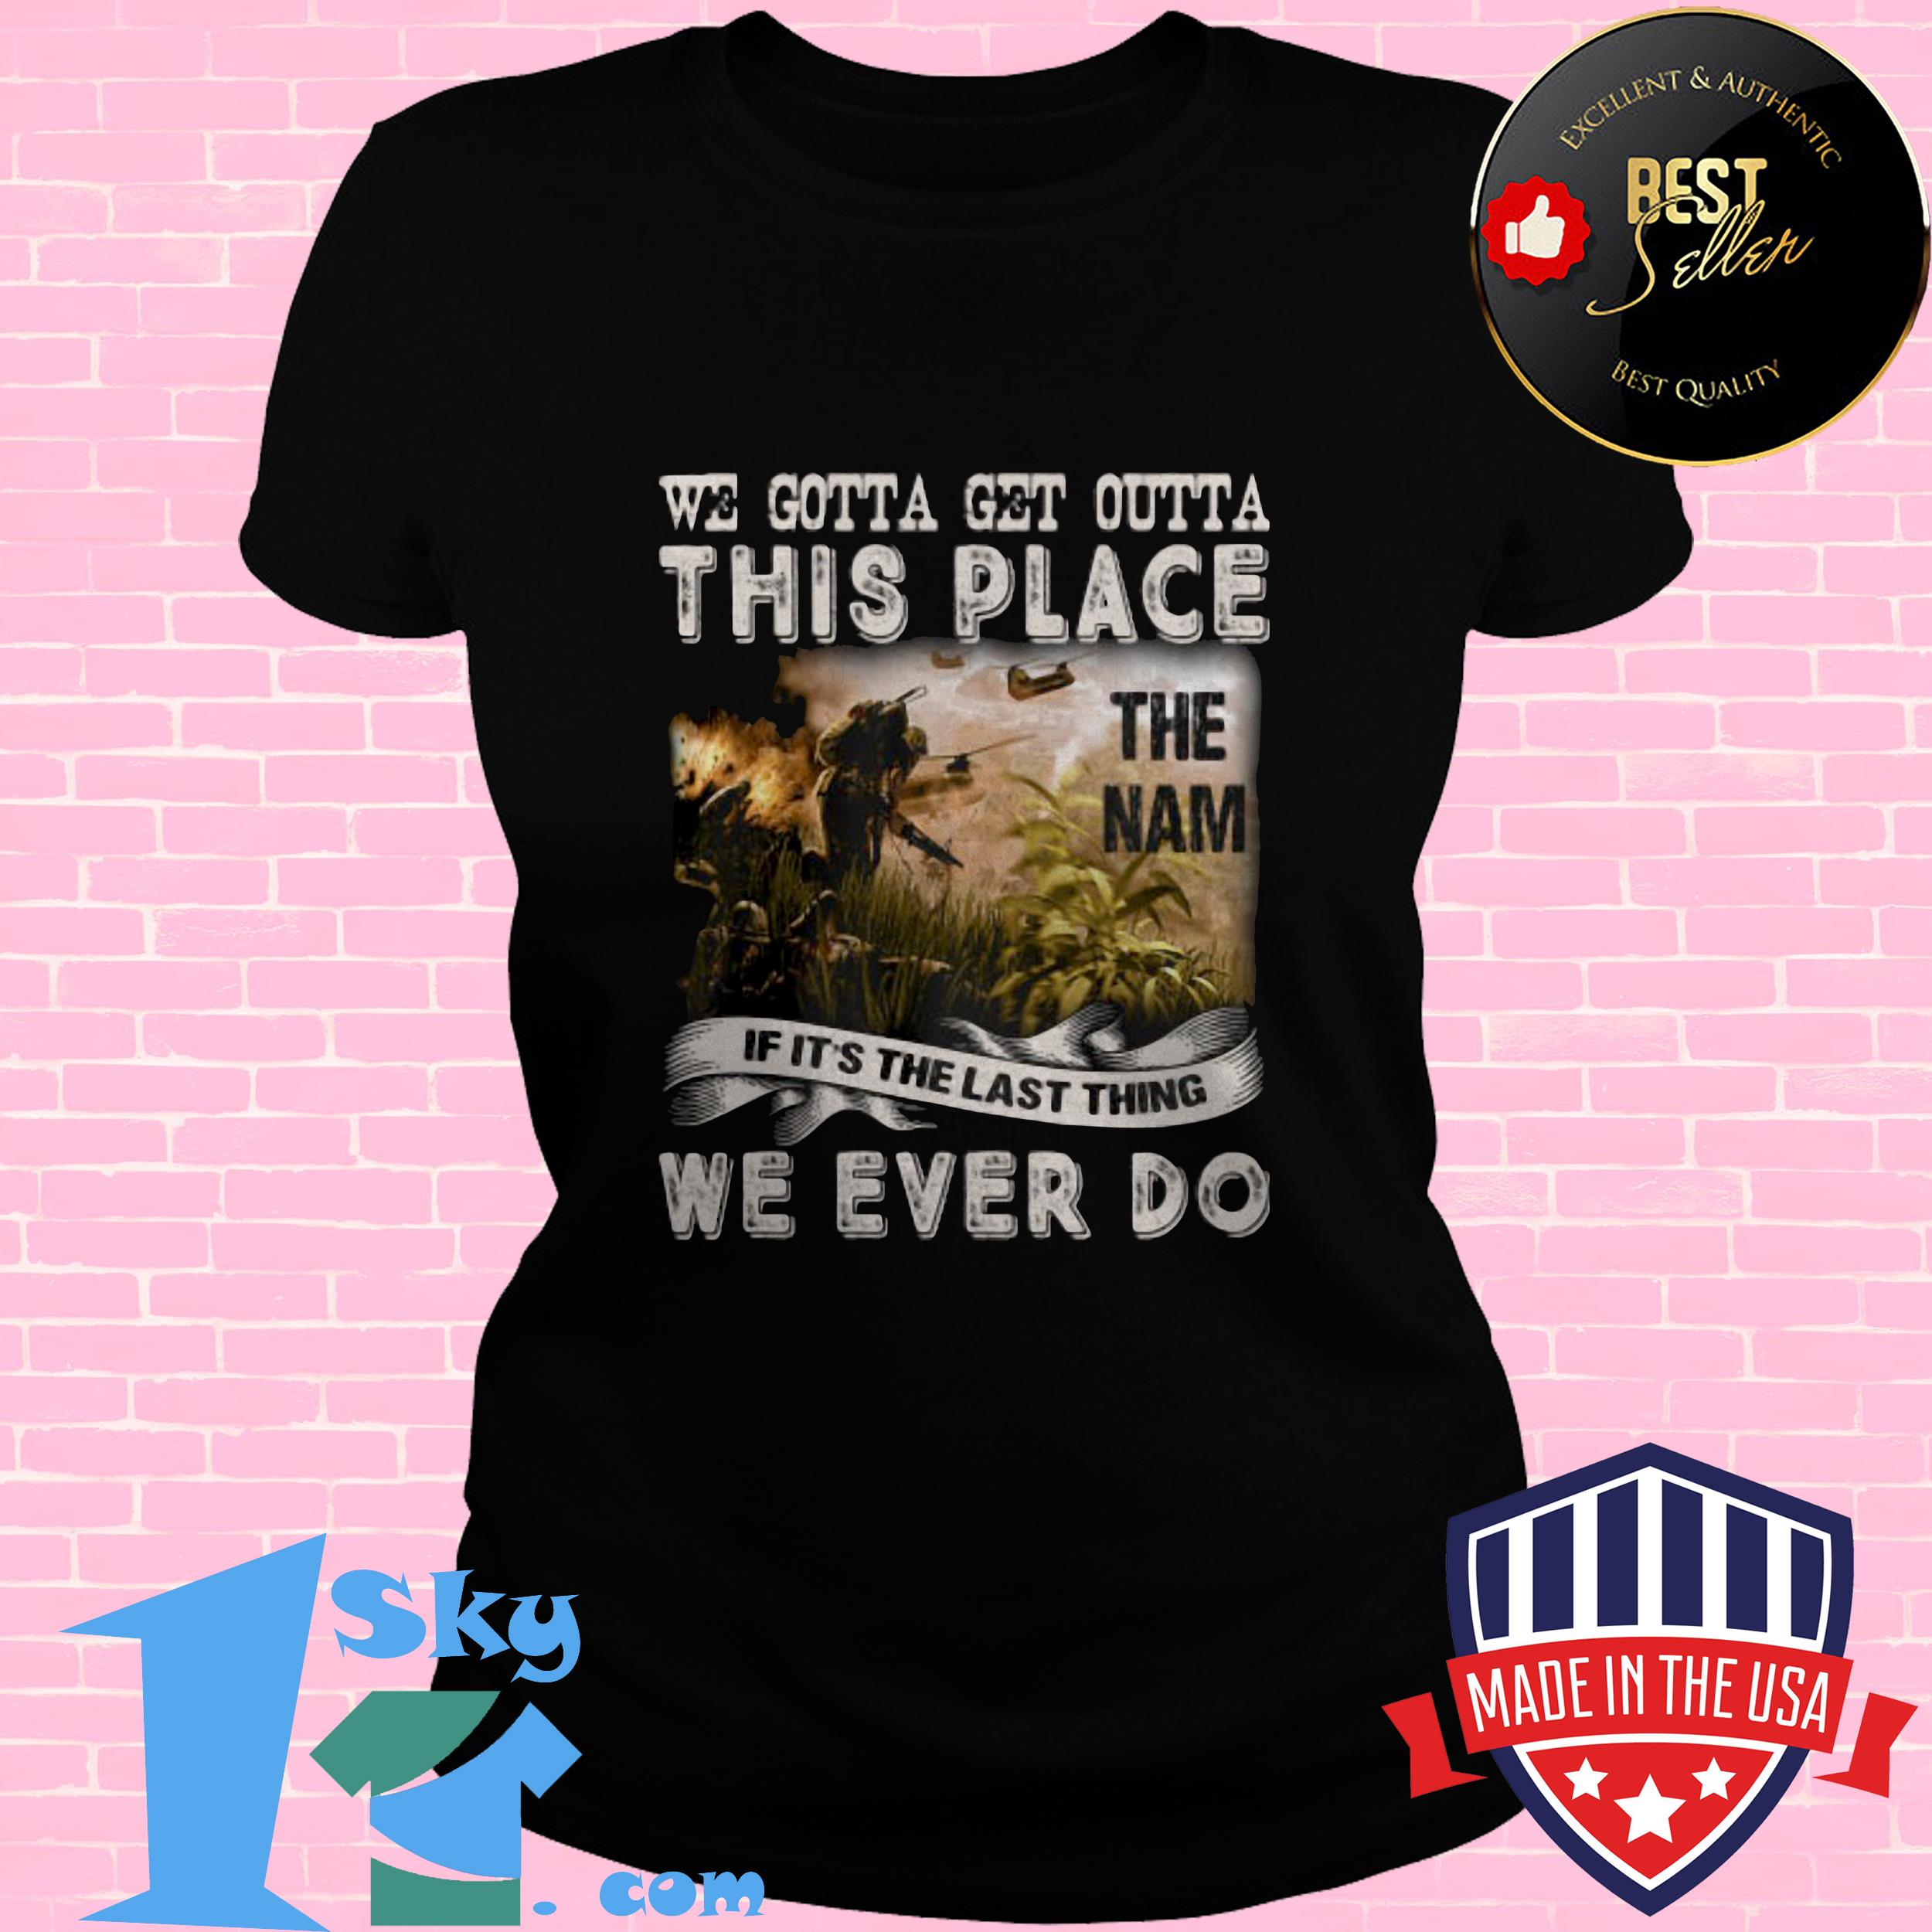 we gotta get outta this place the name we ever do veteran ladies tee - We Gotta Get Outta This Place The Name We Ever Do Veteran shirt